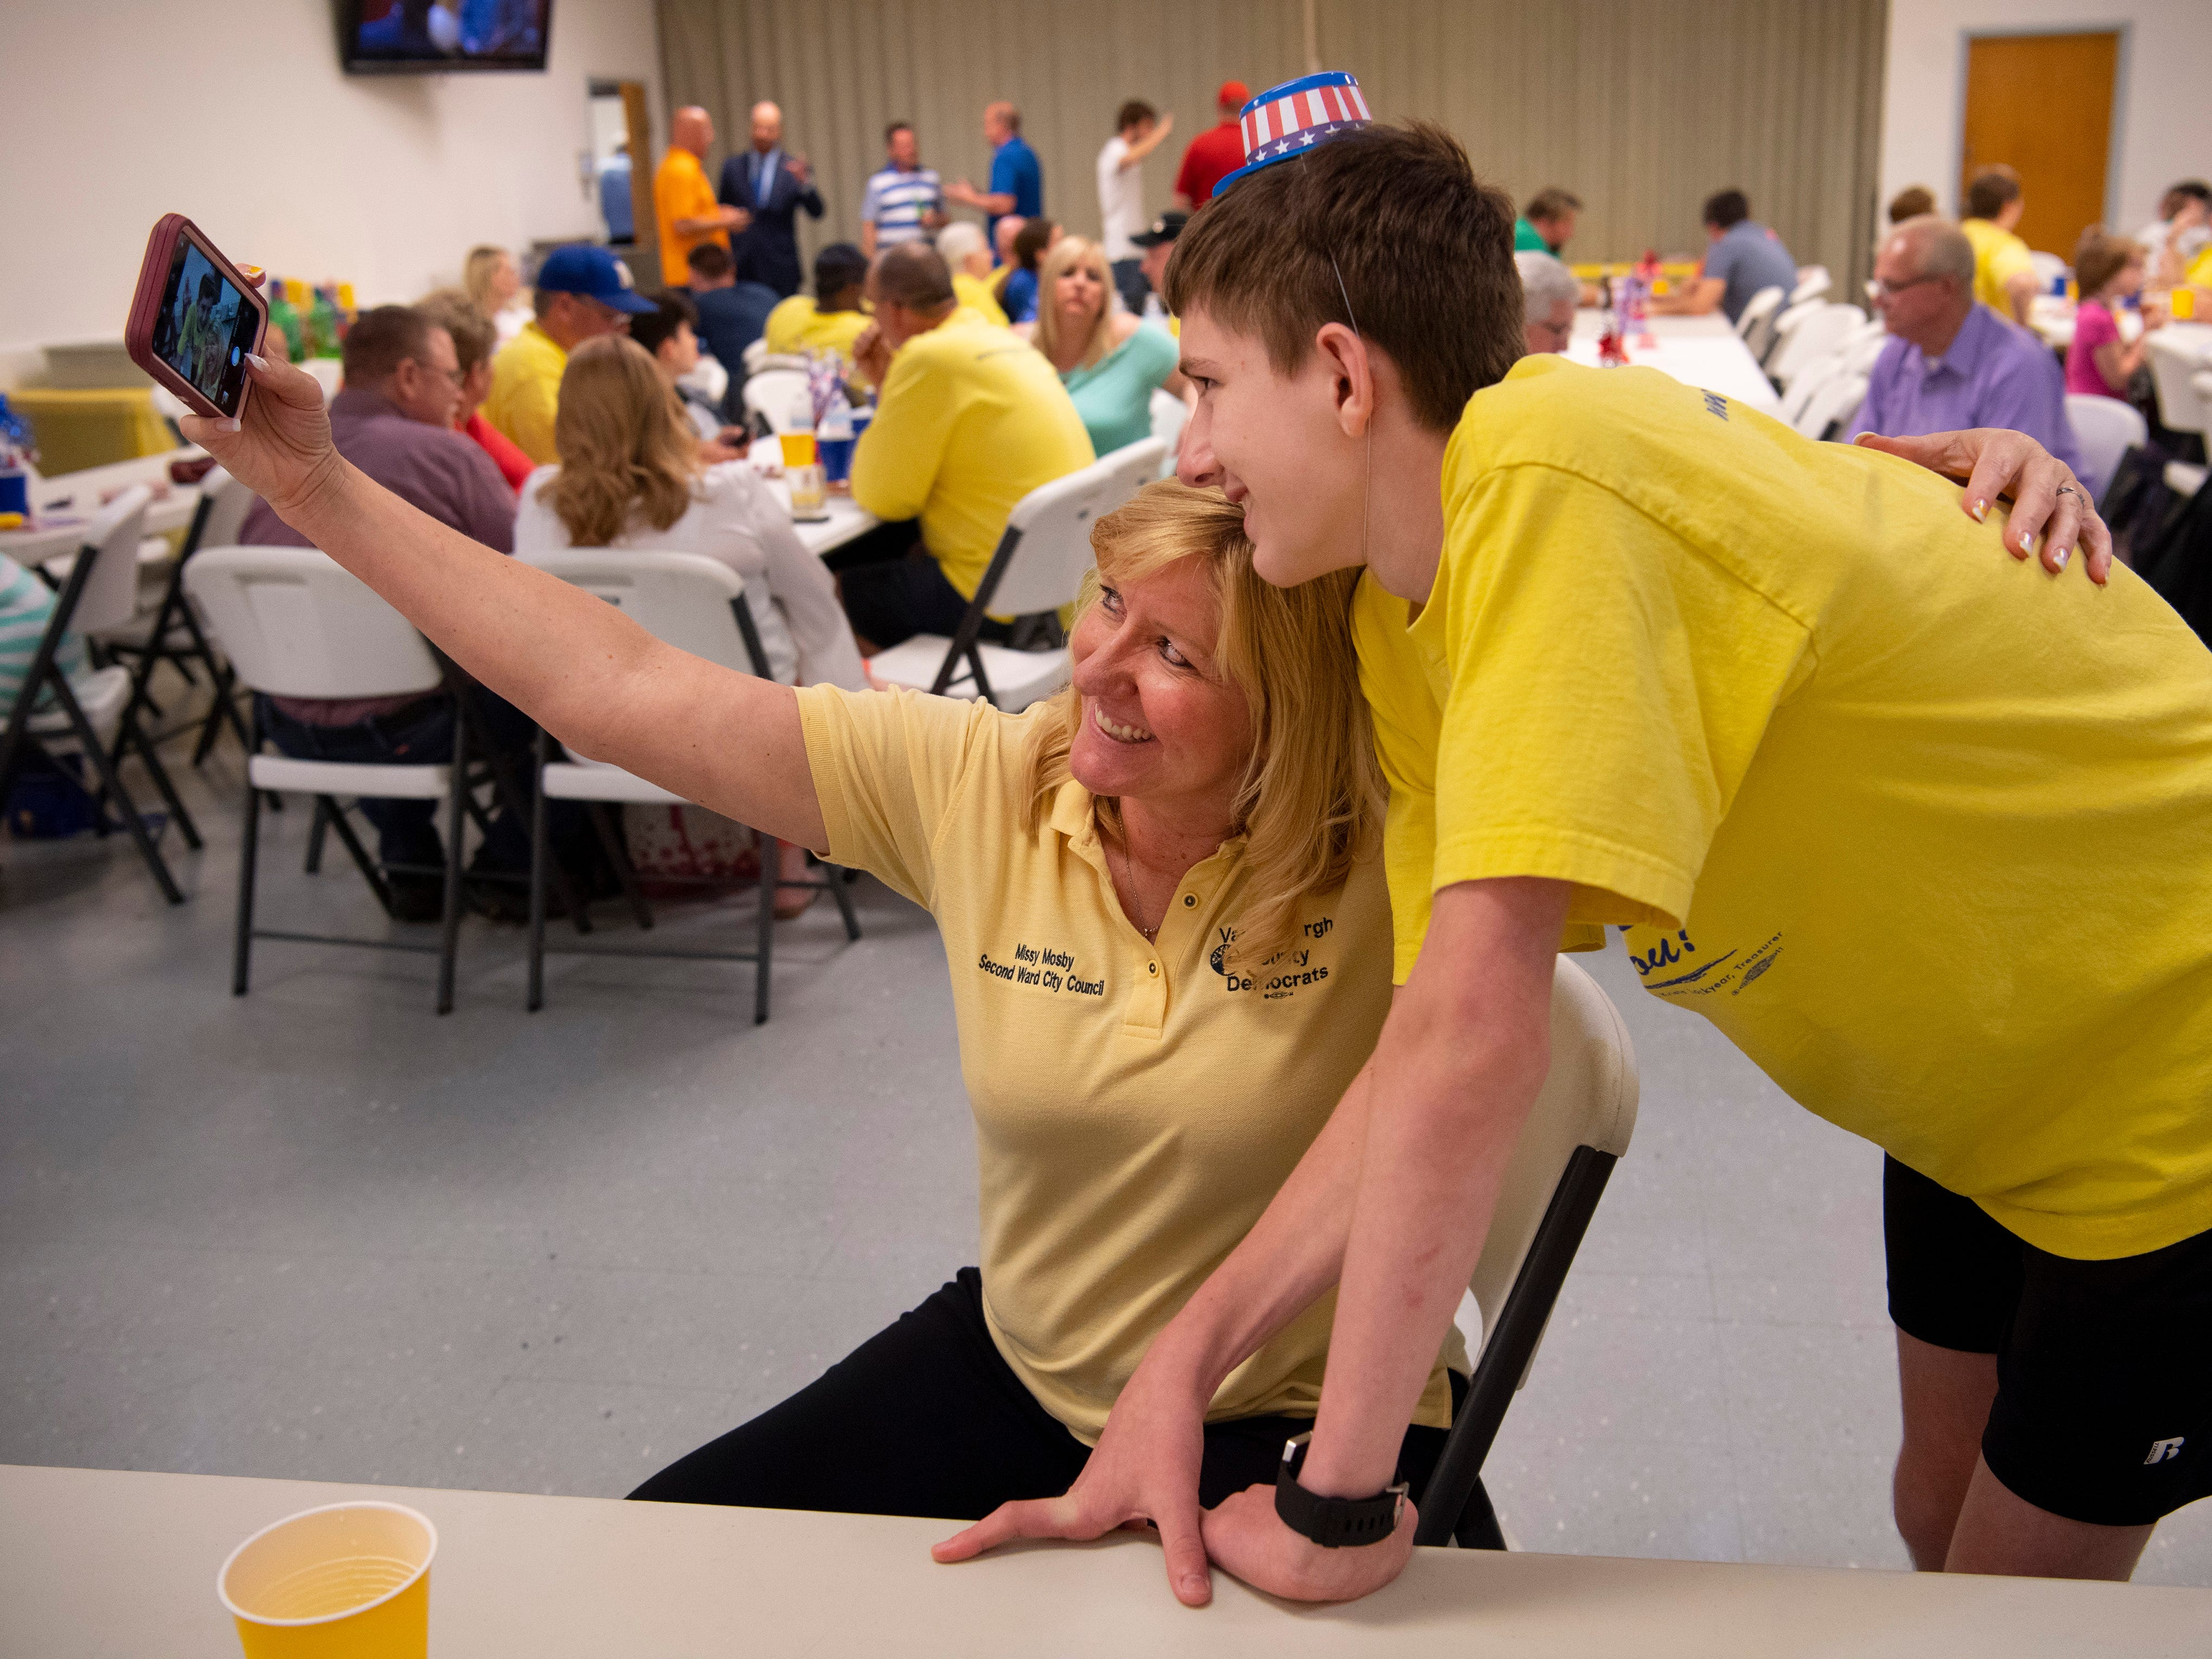 City Council member Missy Mosby (D) takes a selfie with nephew Caleb Diekmann, 15, as they wait for the latest vote tally from the Evansville primary election at the Fraternal Order of Police Tuesday night. Mosby won the 2nd Ward contest and will face Republican Natalie Rascher in the fall general election.